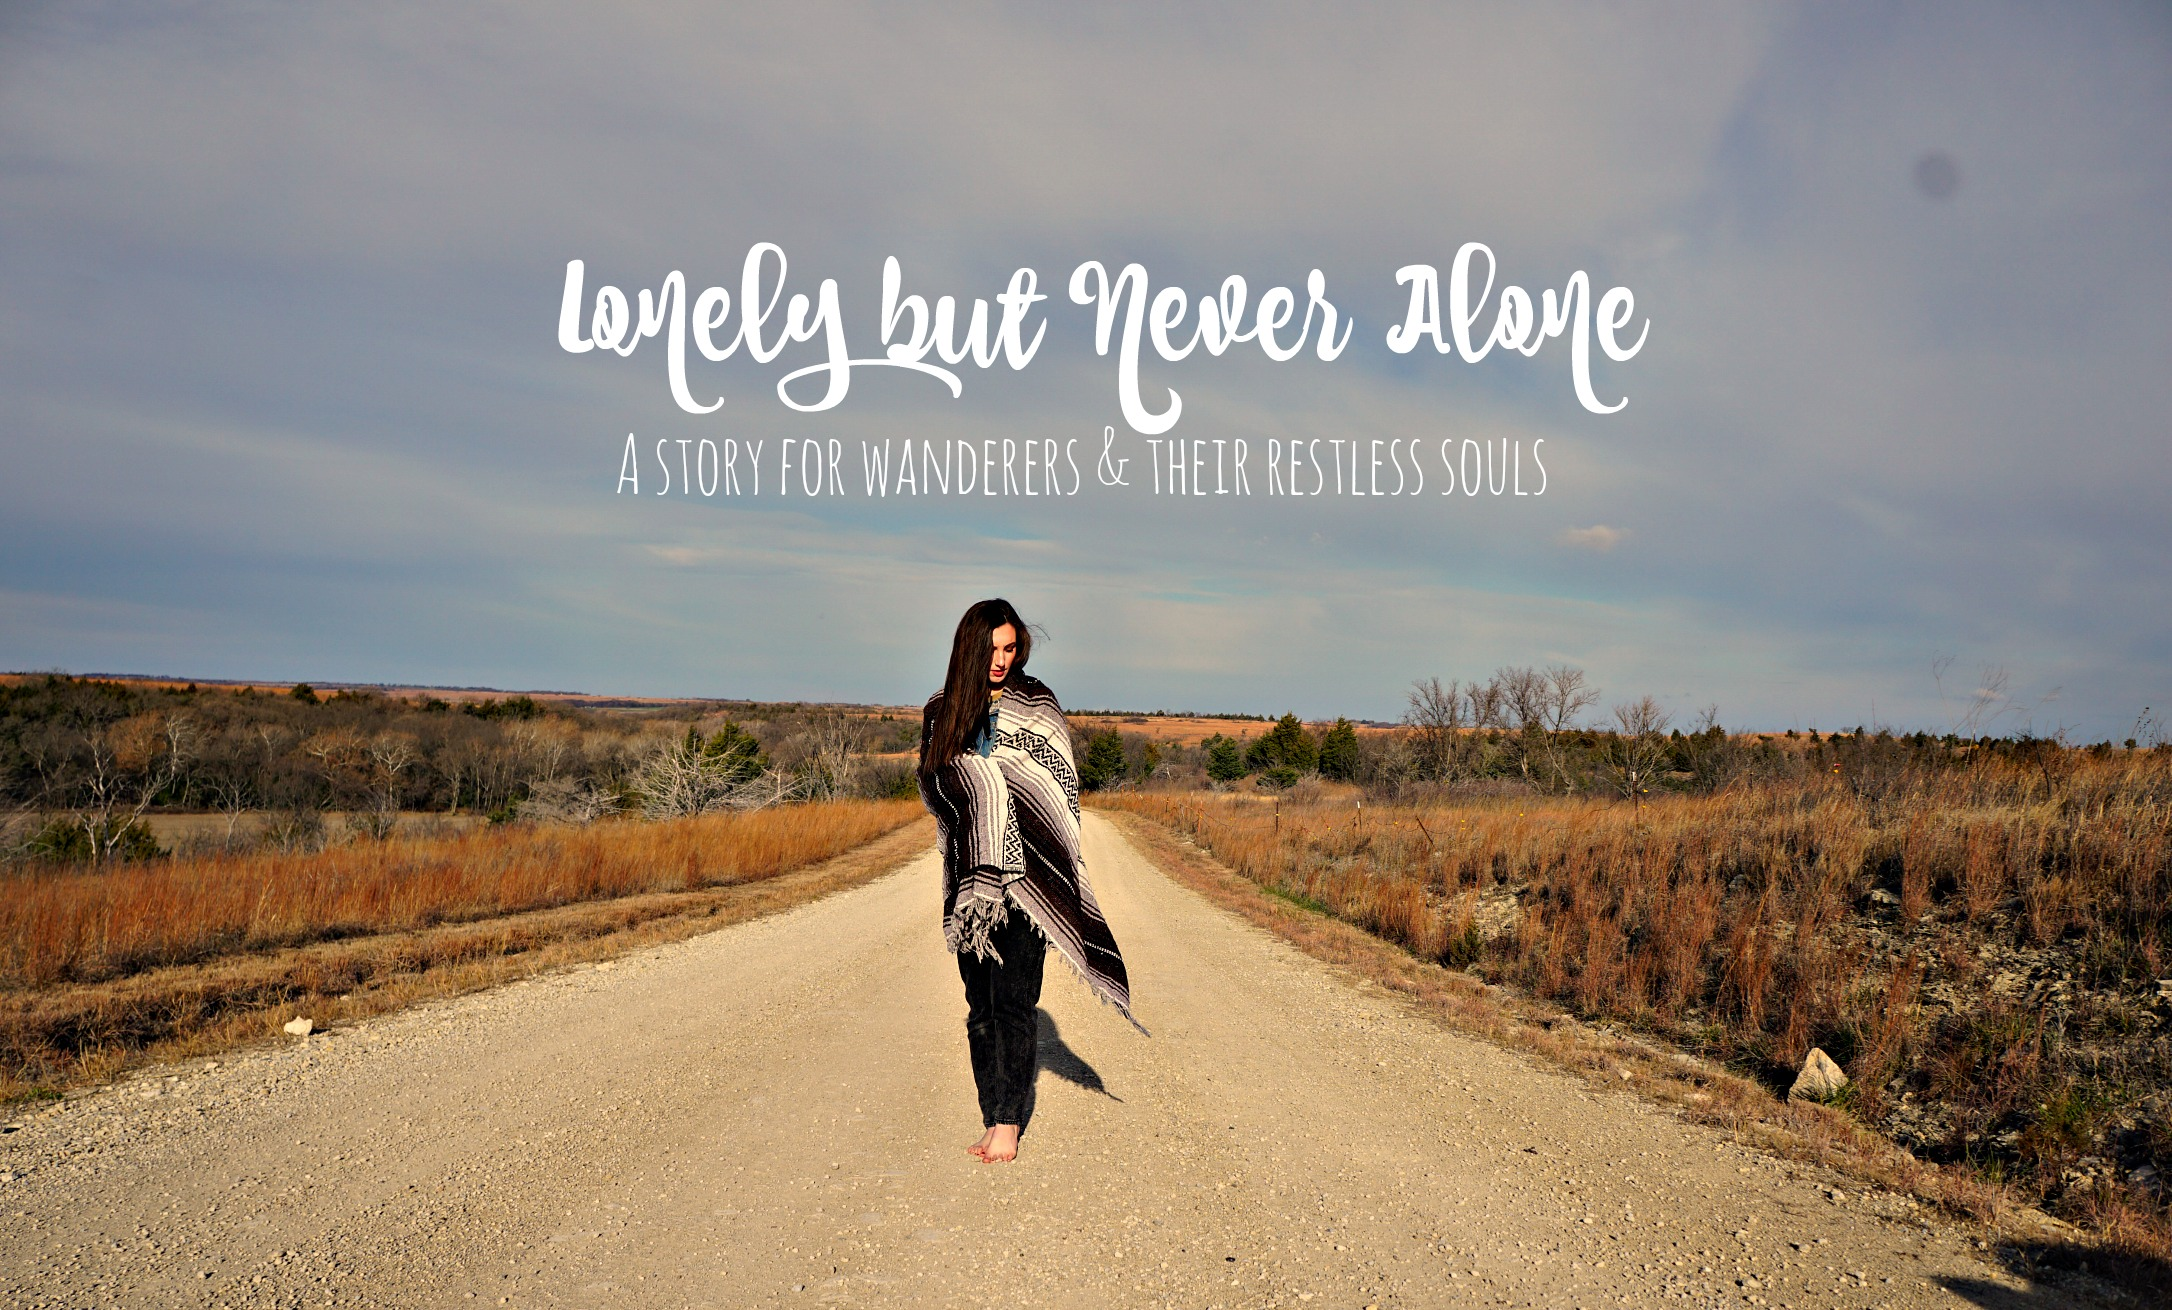 Lonely but Never Alone: A Story for Wanderers and their Restless Souls